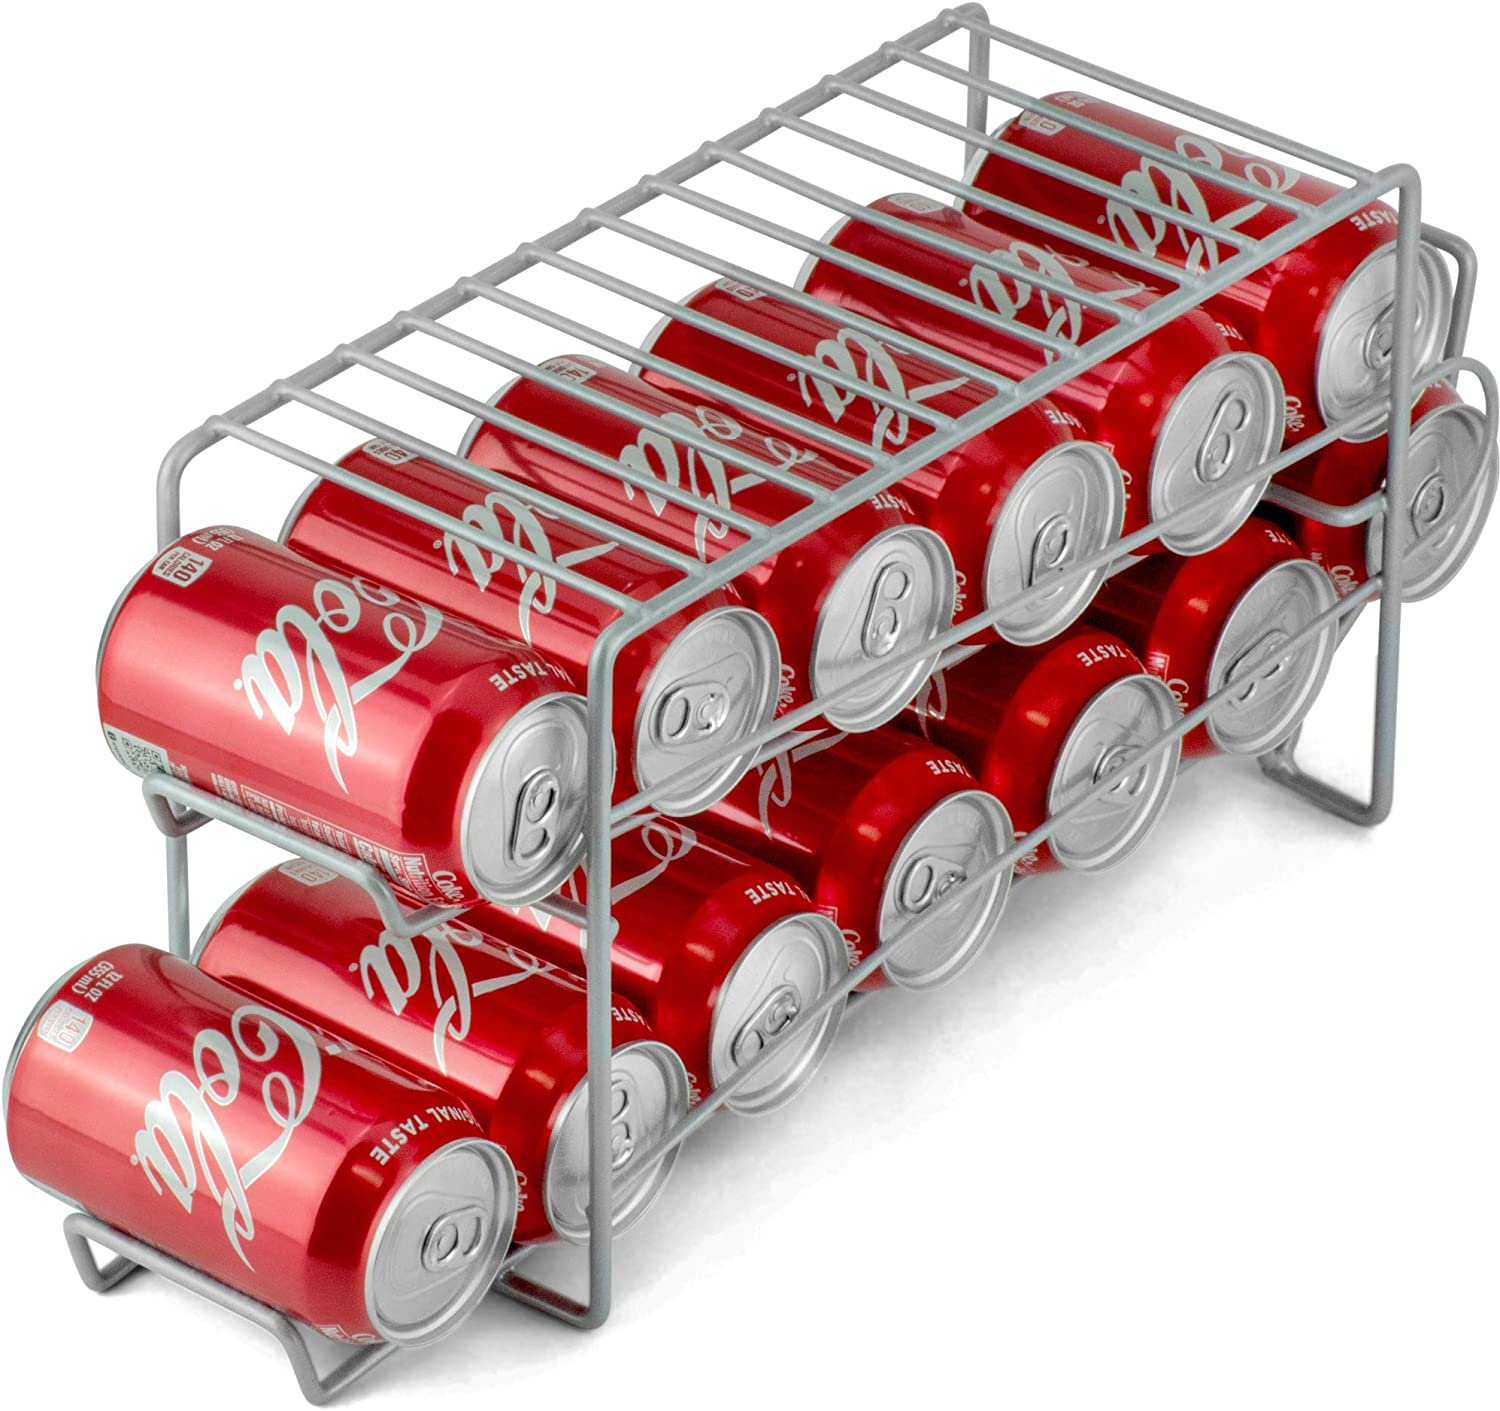 DecorRack Stackable Front Loading Beverage Can Dispenser Rack, Stacking Can Organizer for Soda Cans Holder for Refrigerator, Kitchen Cabinet, Pantry, Fridge, Gray (1 Pack)